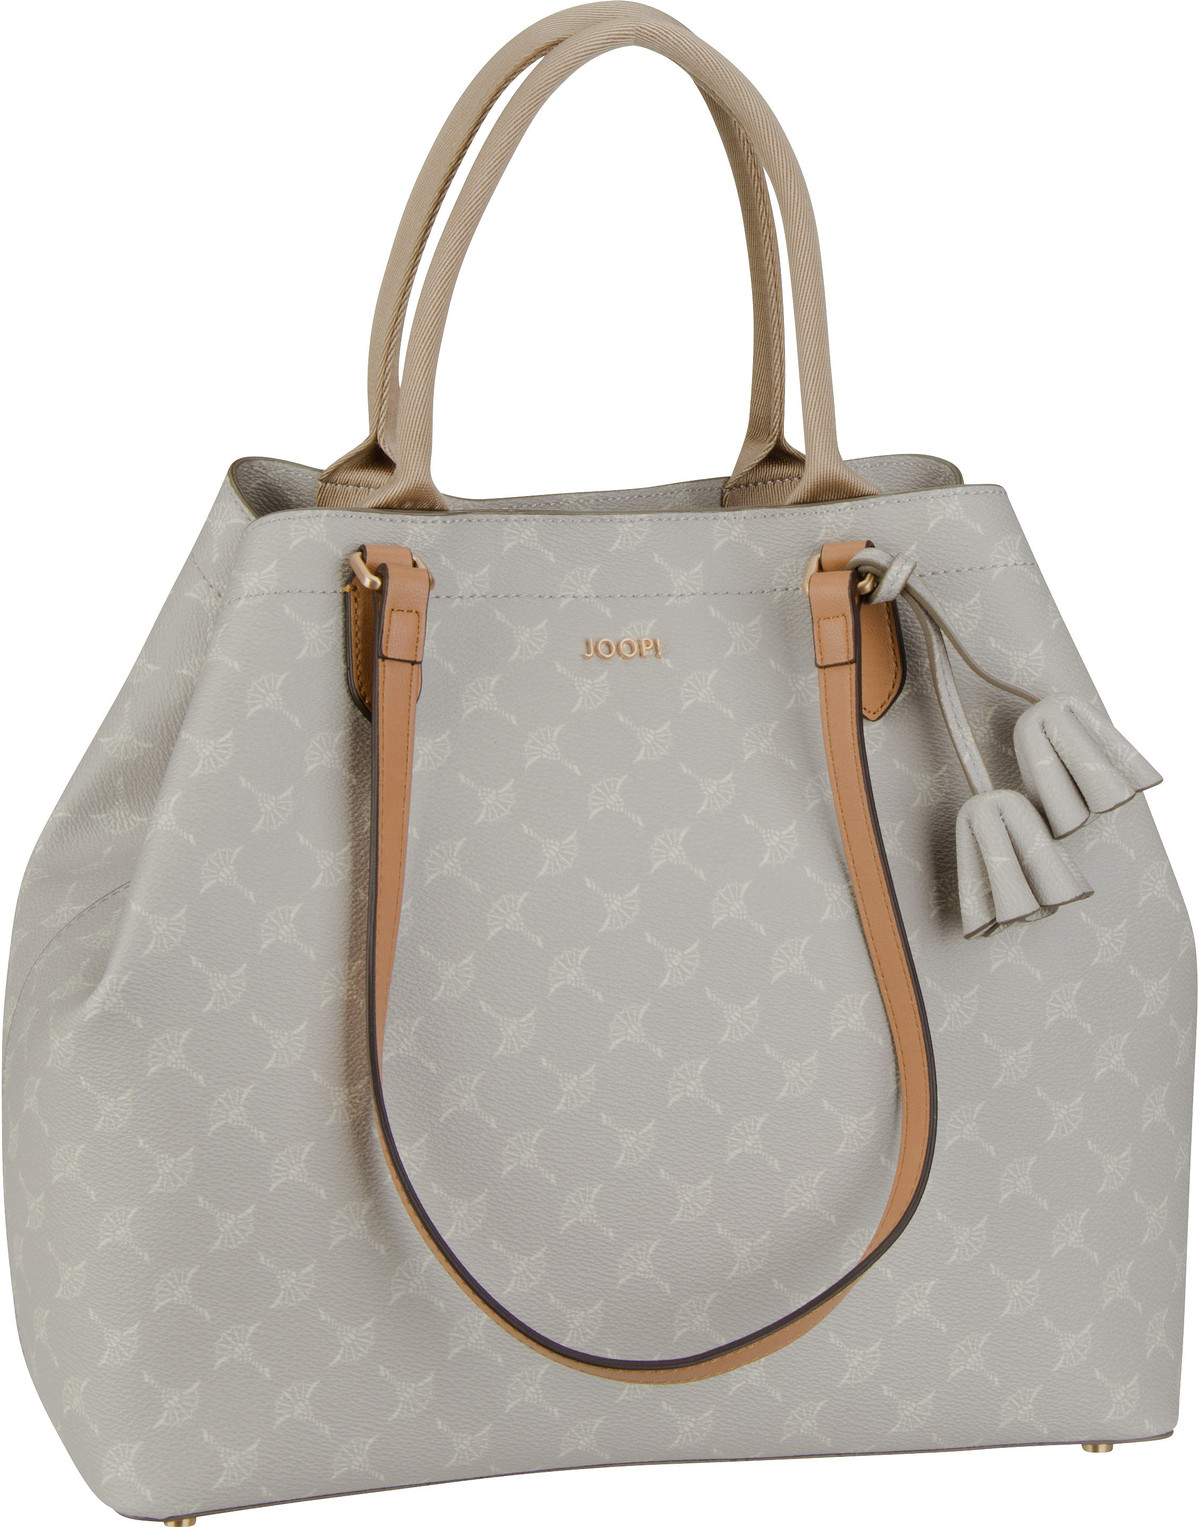 Handtasche Cortina Sara Shopper LHO Lightgrey